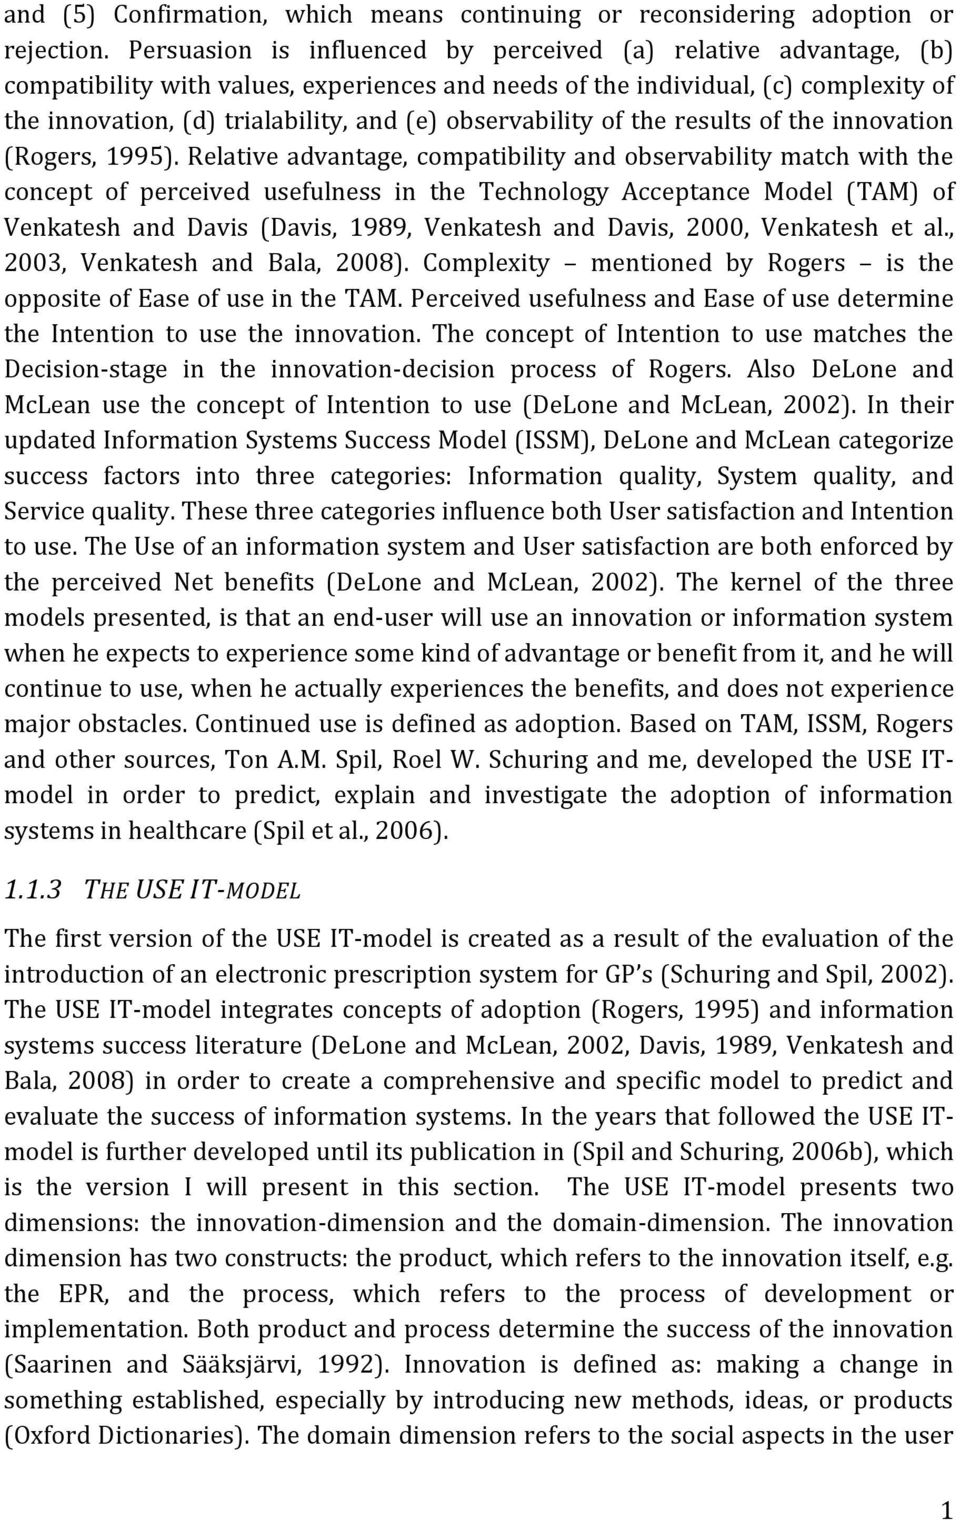 observability of the results of the innovation (Rogers, 1995).